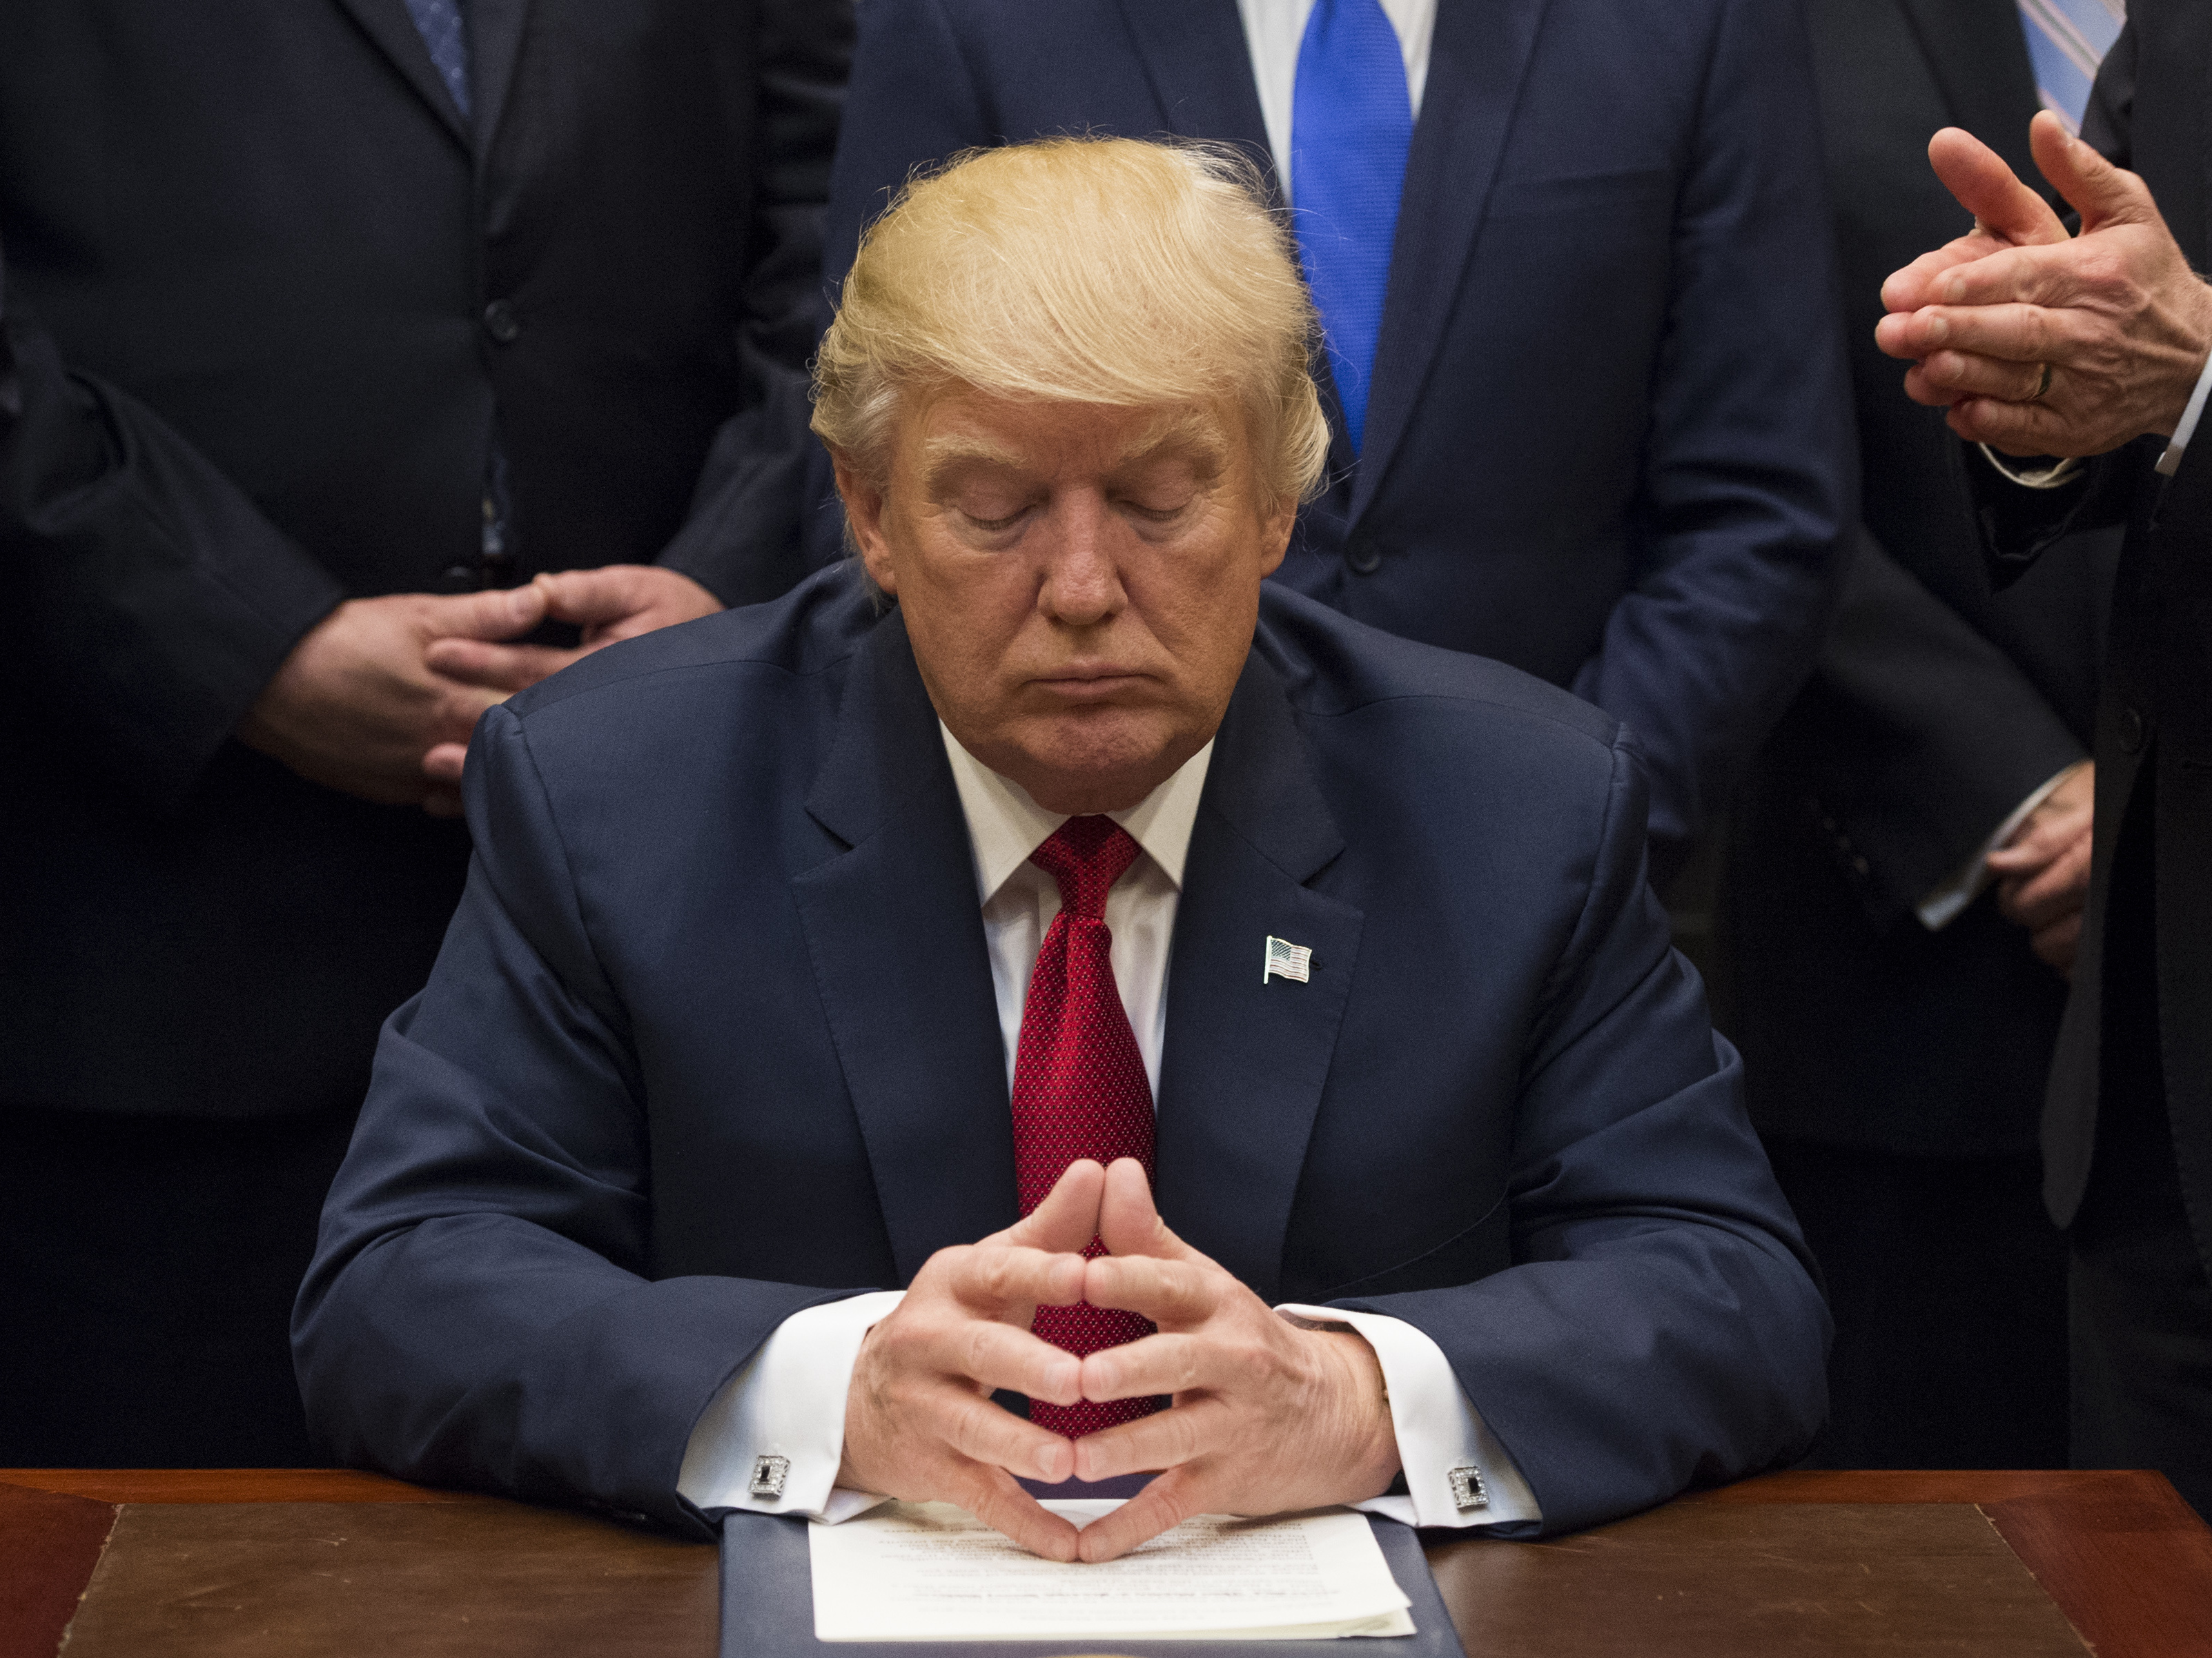 President Trump has left many scratching their heads on what kind of president he will be. His first 100 days as president offered conflicting messages. (Molly Riley/Pool/Bloomberg via Getty Images)